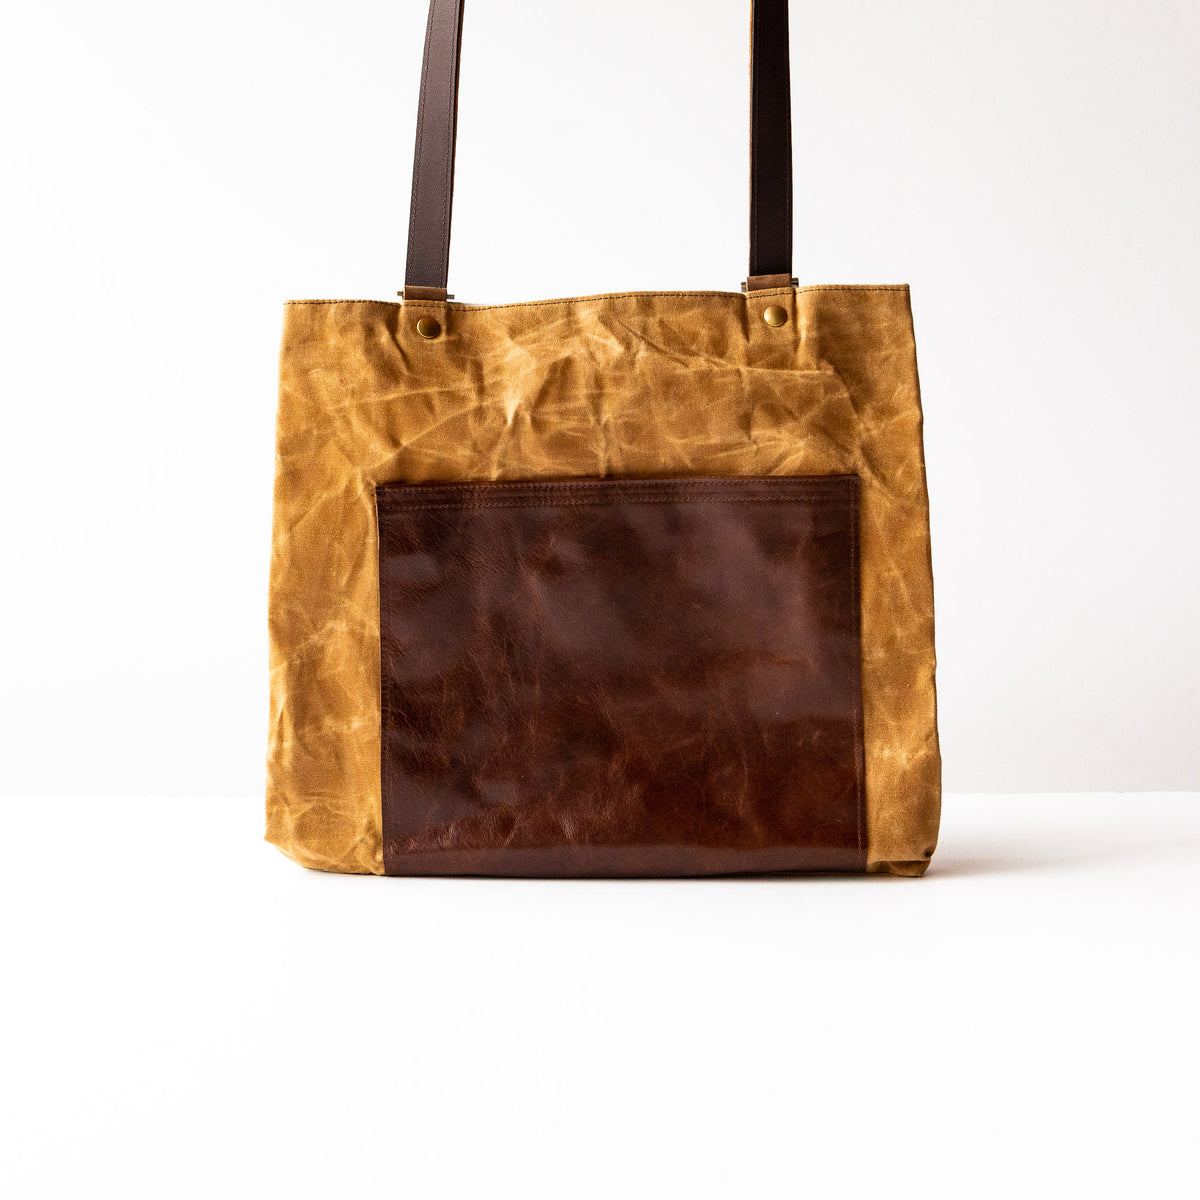 Masson - Large Tote Bag / Backpack - Cowhide & Waxed Cotton Canvas - Sold by Chic & Basta